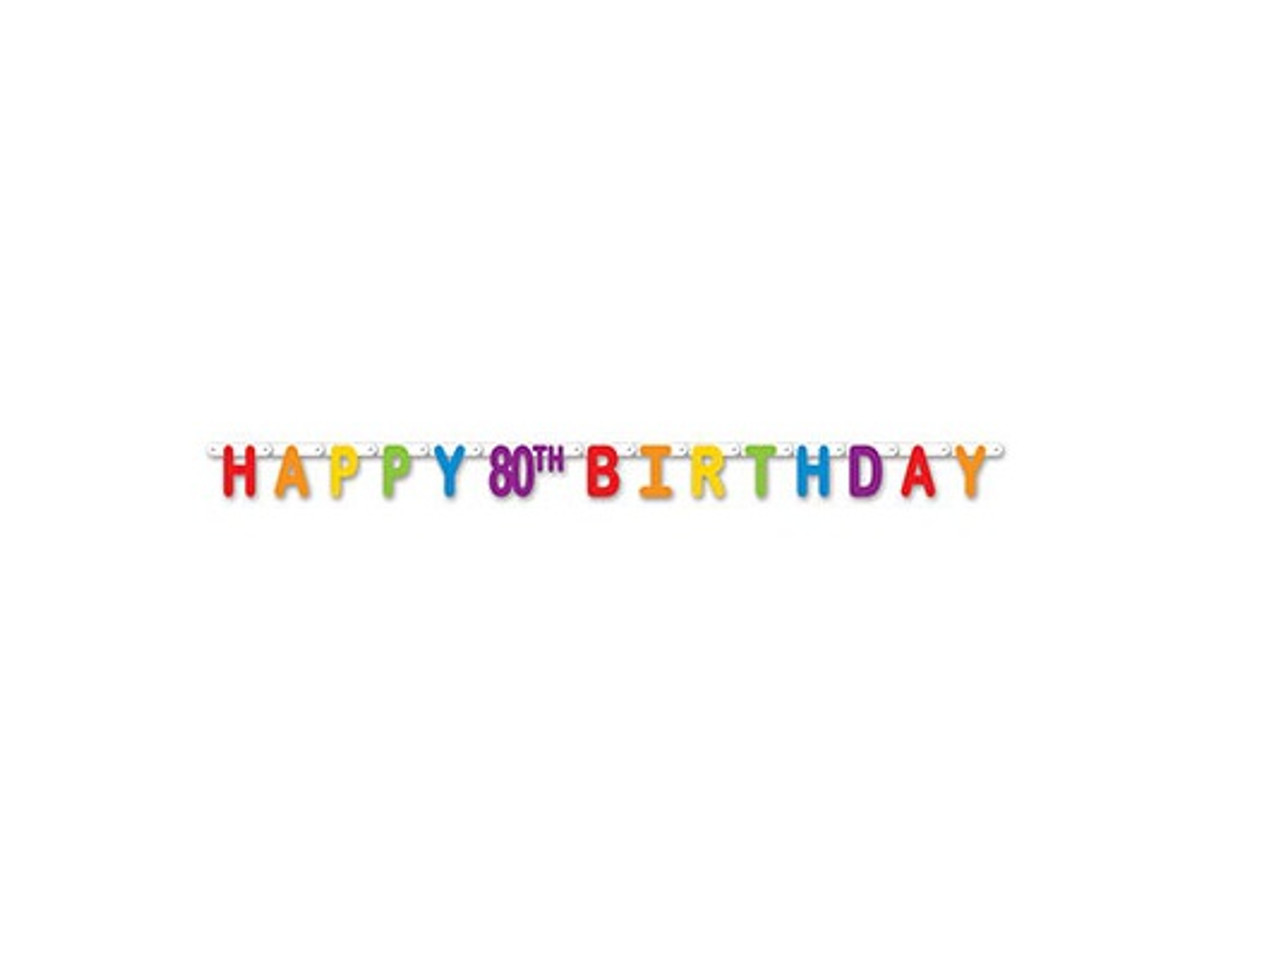 Pack Of 12 Colorful Jointed Happy 80th Birthday Banner Hanging Party